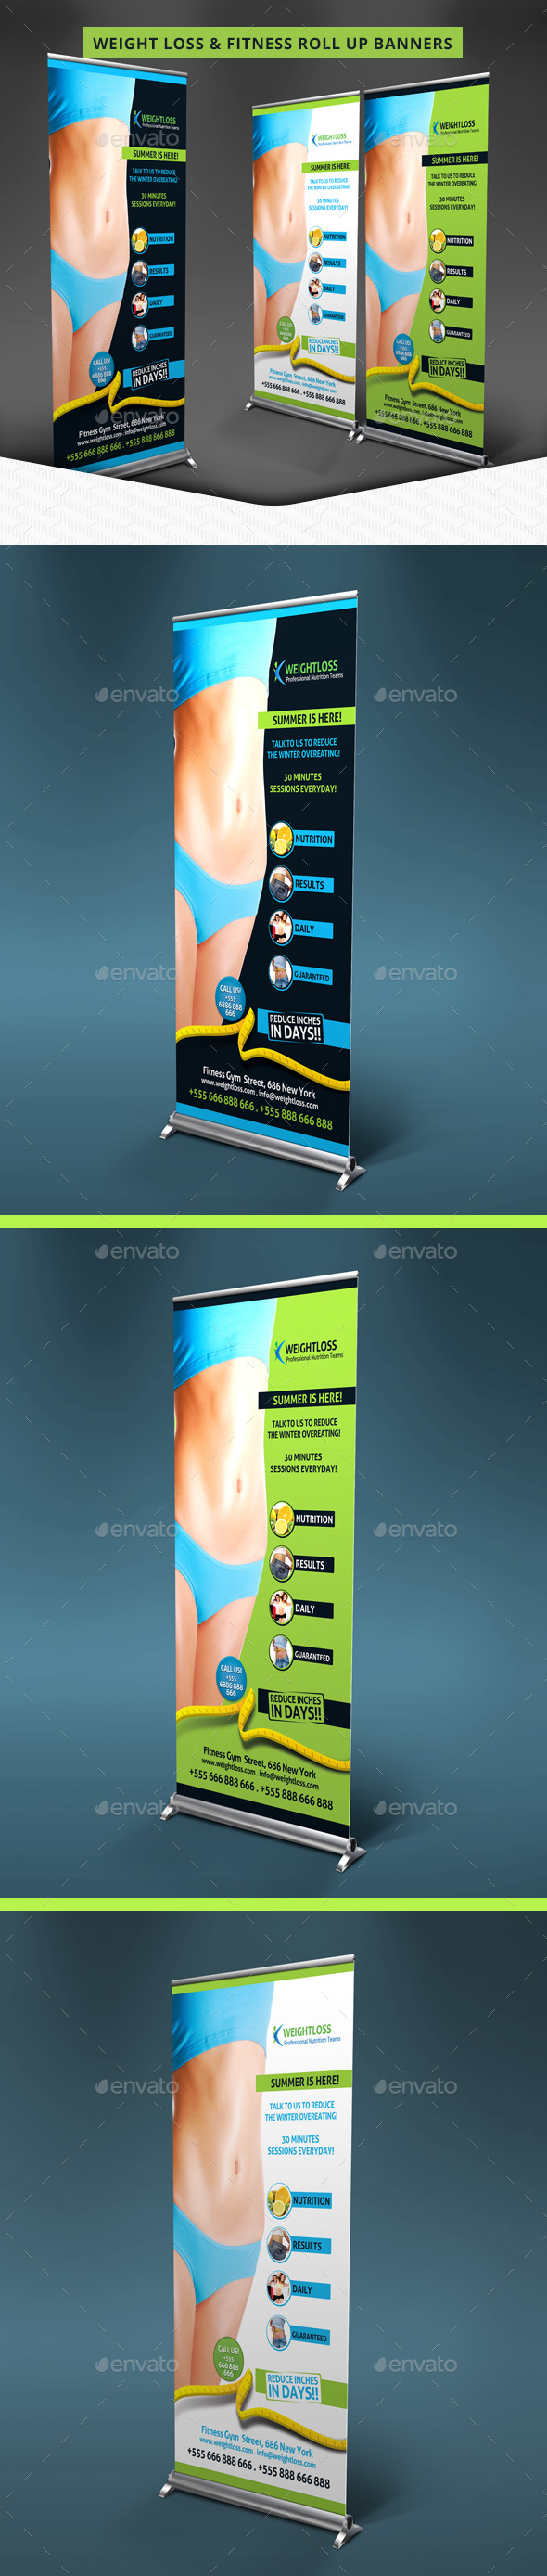 Weight Loss & Fitness Roll Up Banners - Signage Print Templates